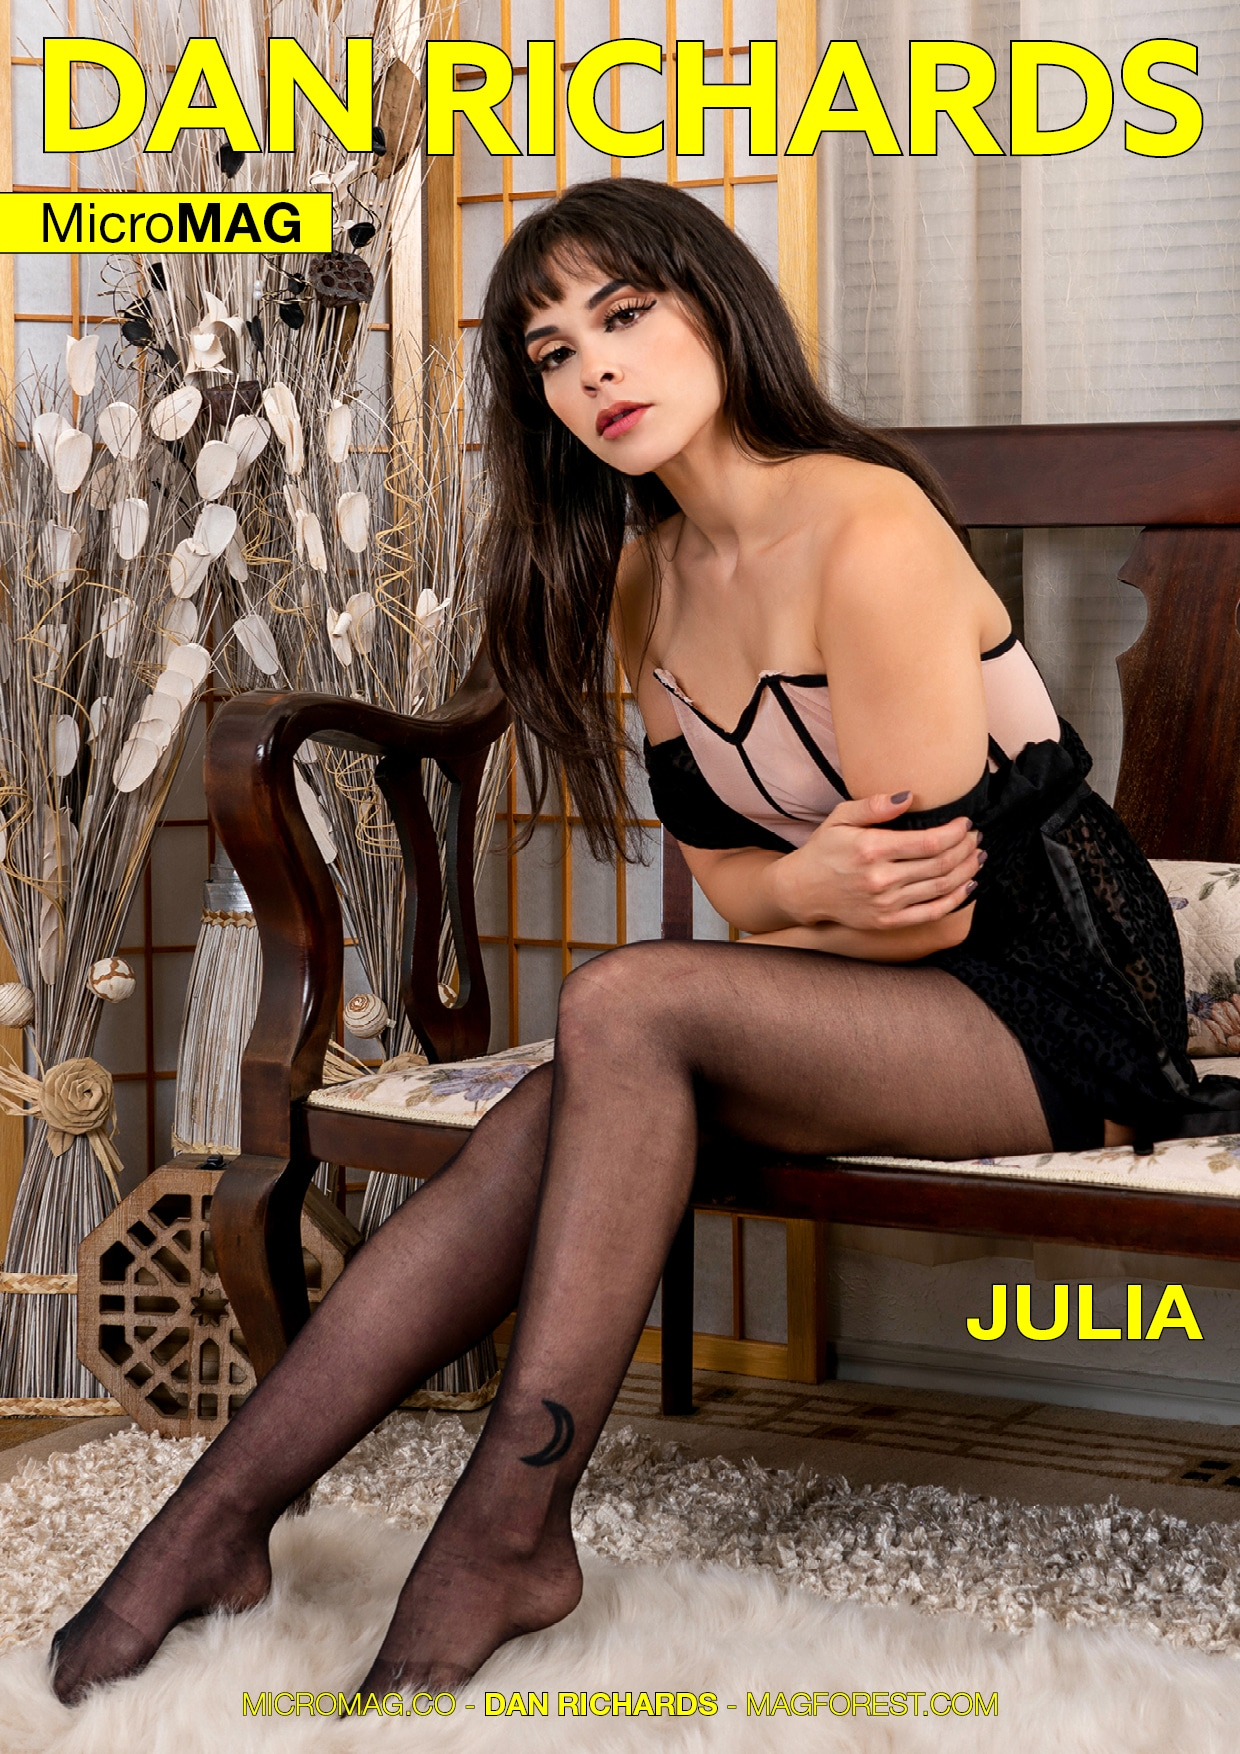 Dan Richards MicroMAG - Julia - Issue 3 2